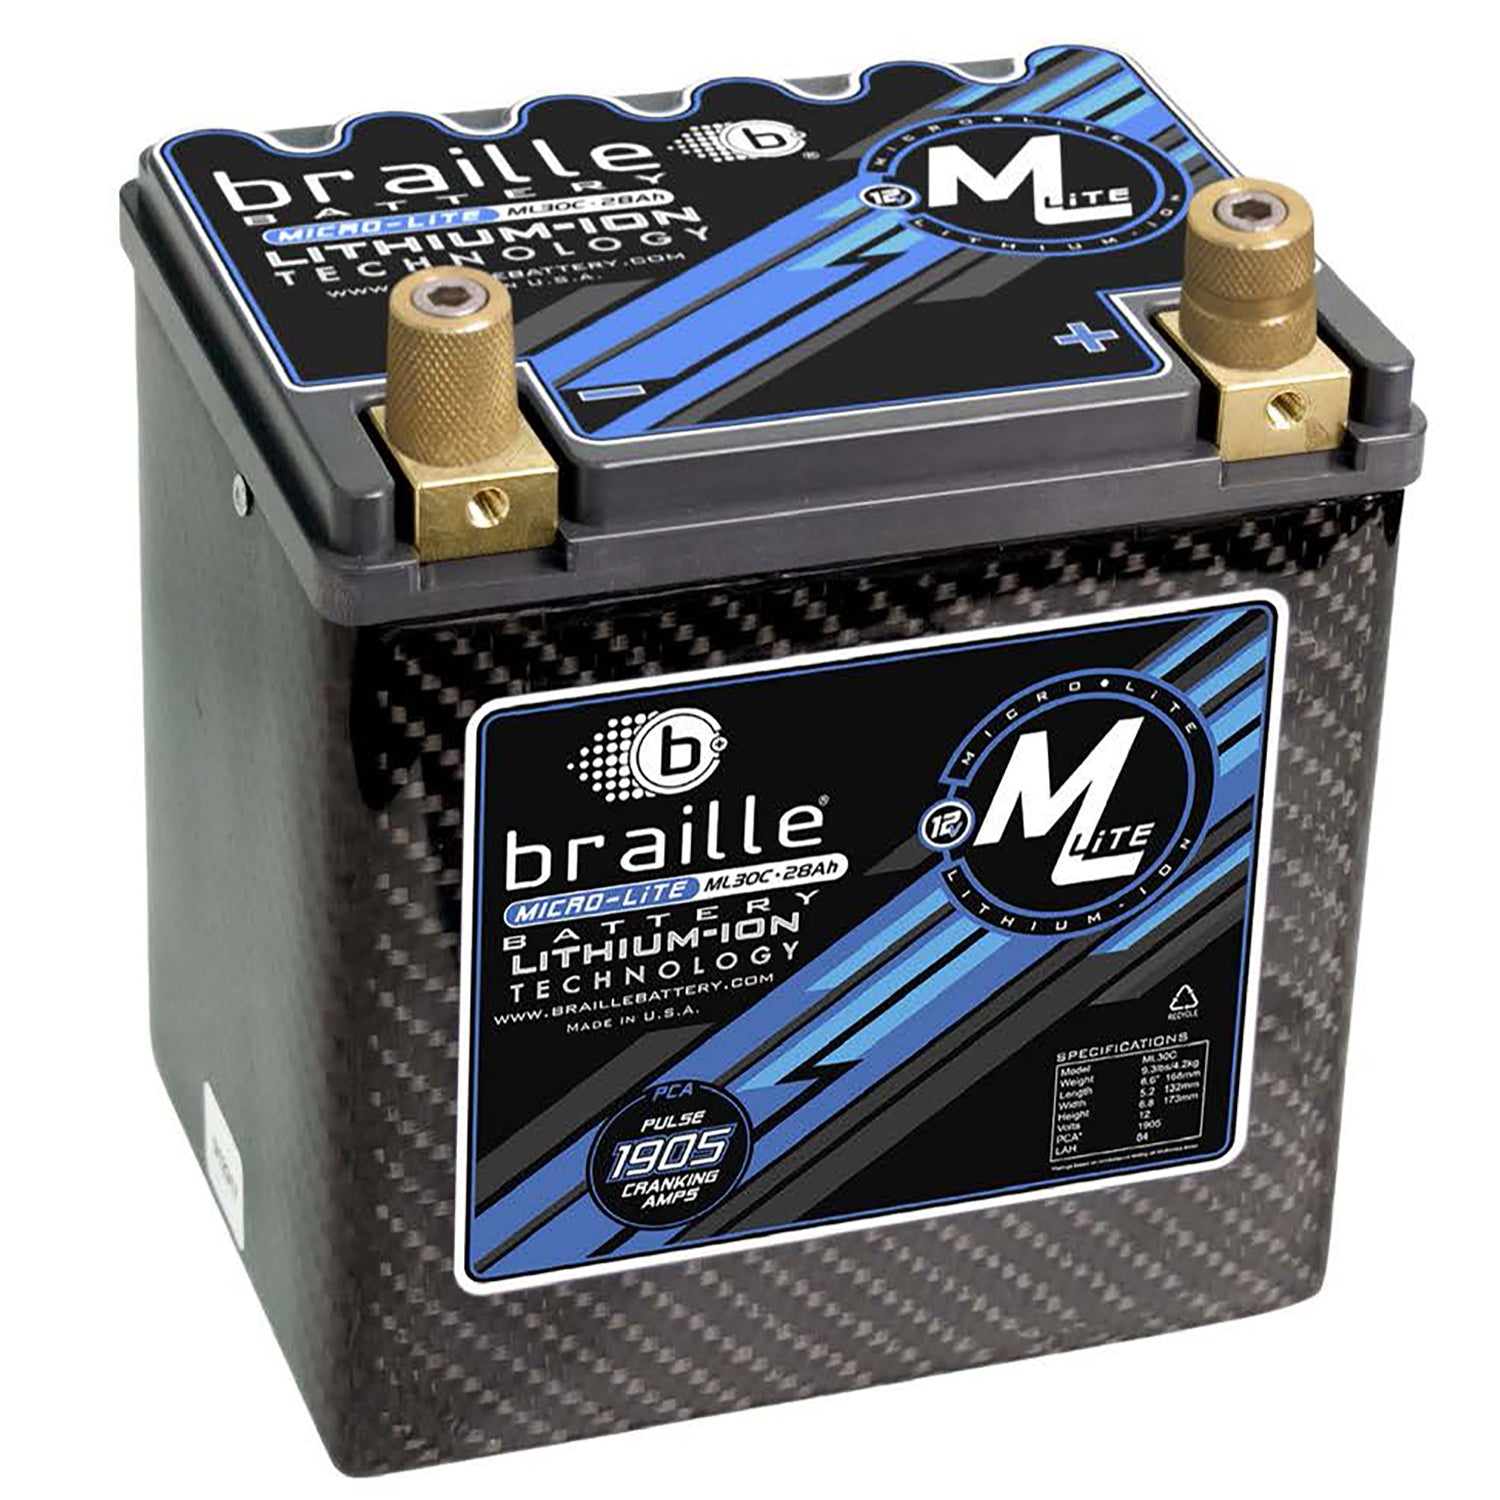 ML30C - MicroLite ML30C lithium battery